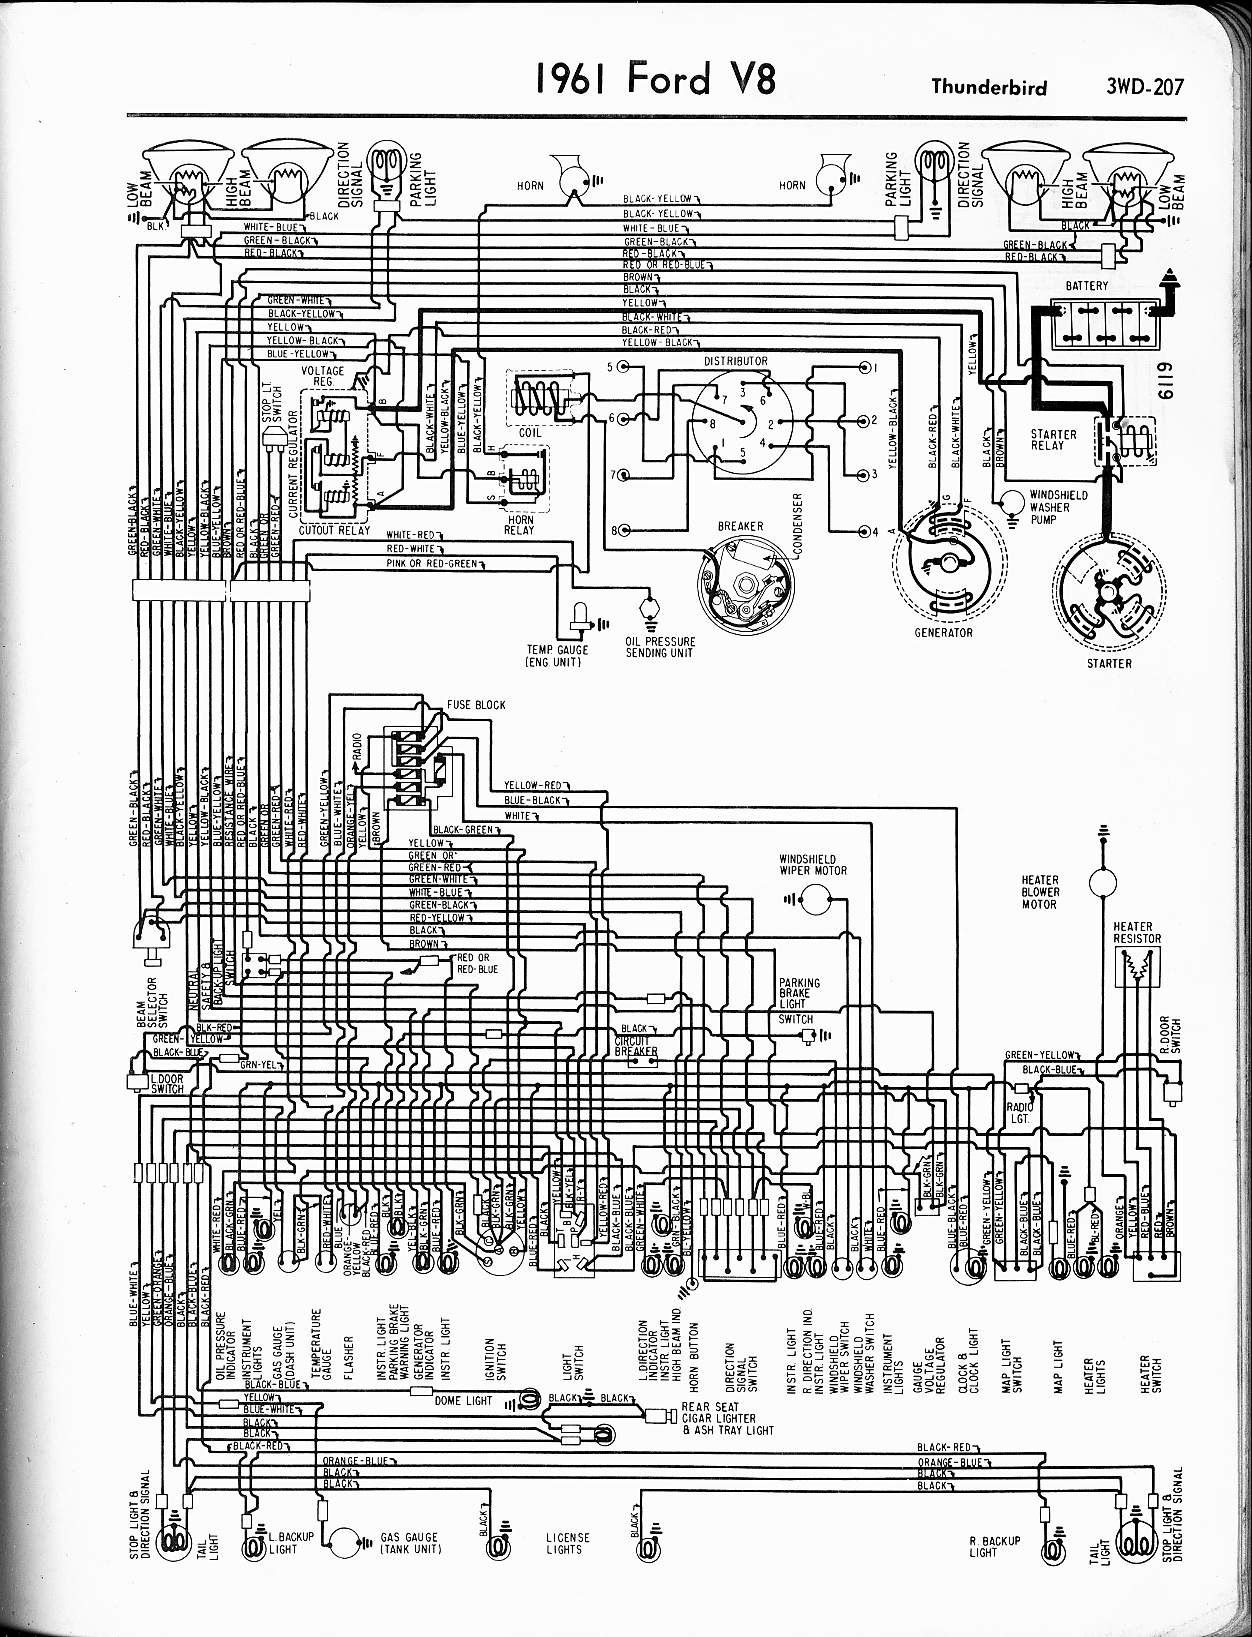 MWire5765 207 57 65 ford wiring diagrams 1965 thunderbird wiring harness at alyssarenee.co